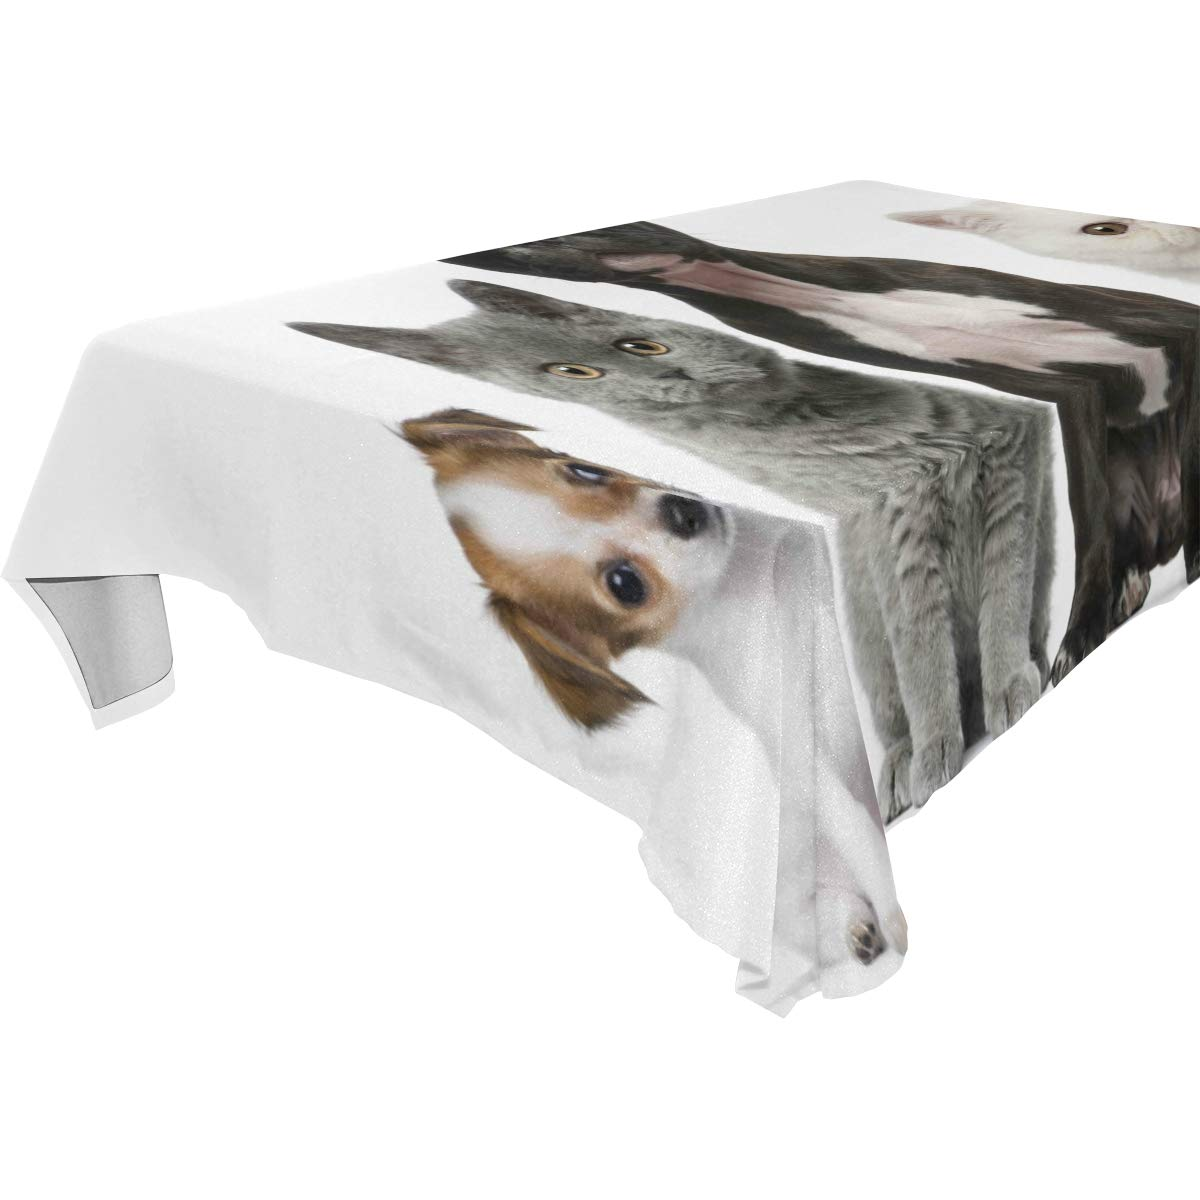 Modern Rectangle Square Tablecloth 54x54 inches Cute Animals Cats Dogs Puppy Baby Kitten Cover for Dinners Parties Banquet or Picnic